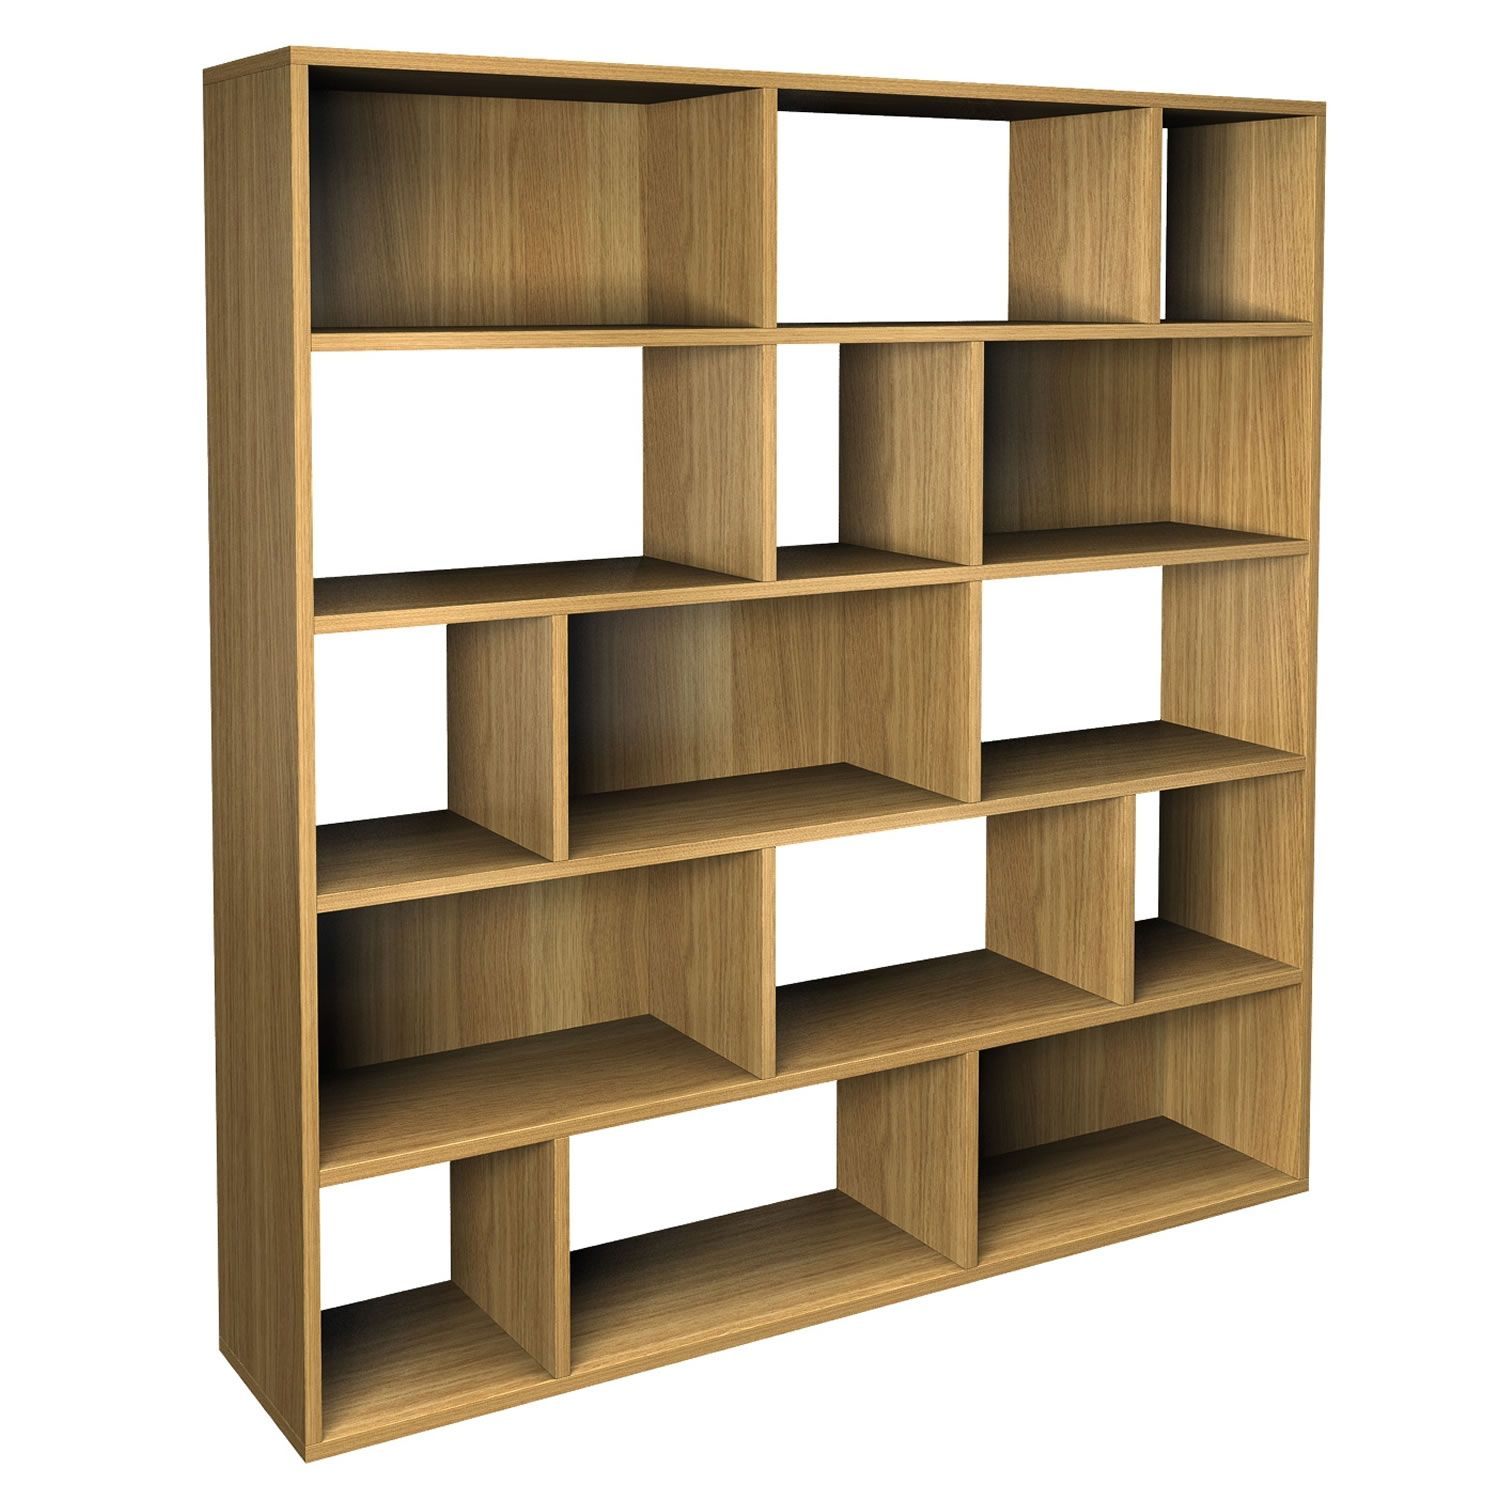 Furniture simple stylish designs pictures of creative Shelves design ideas